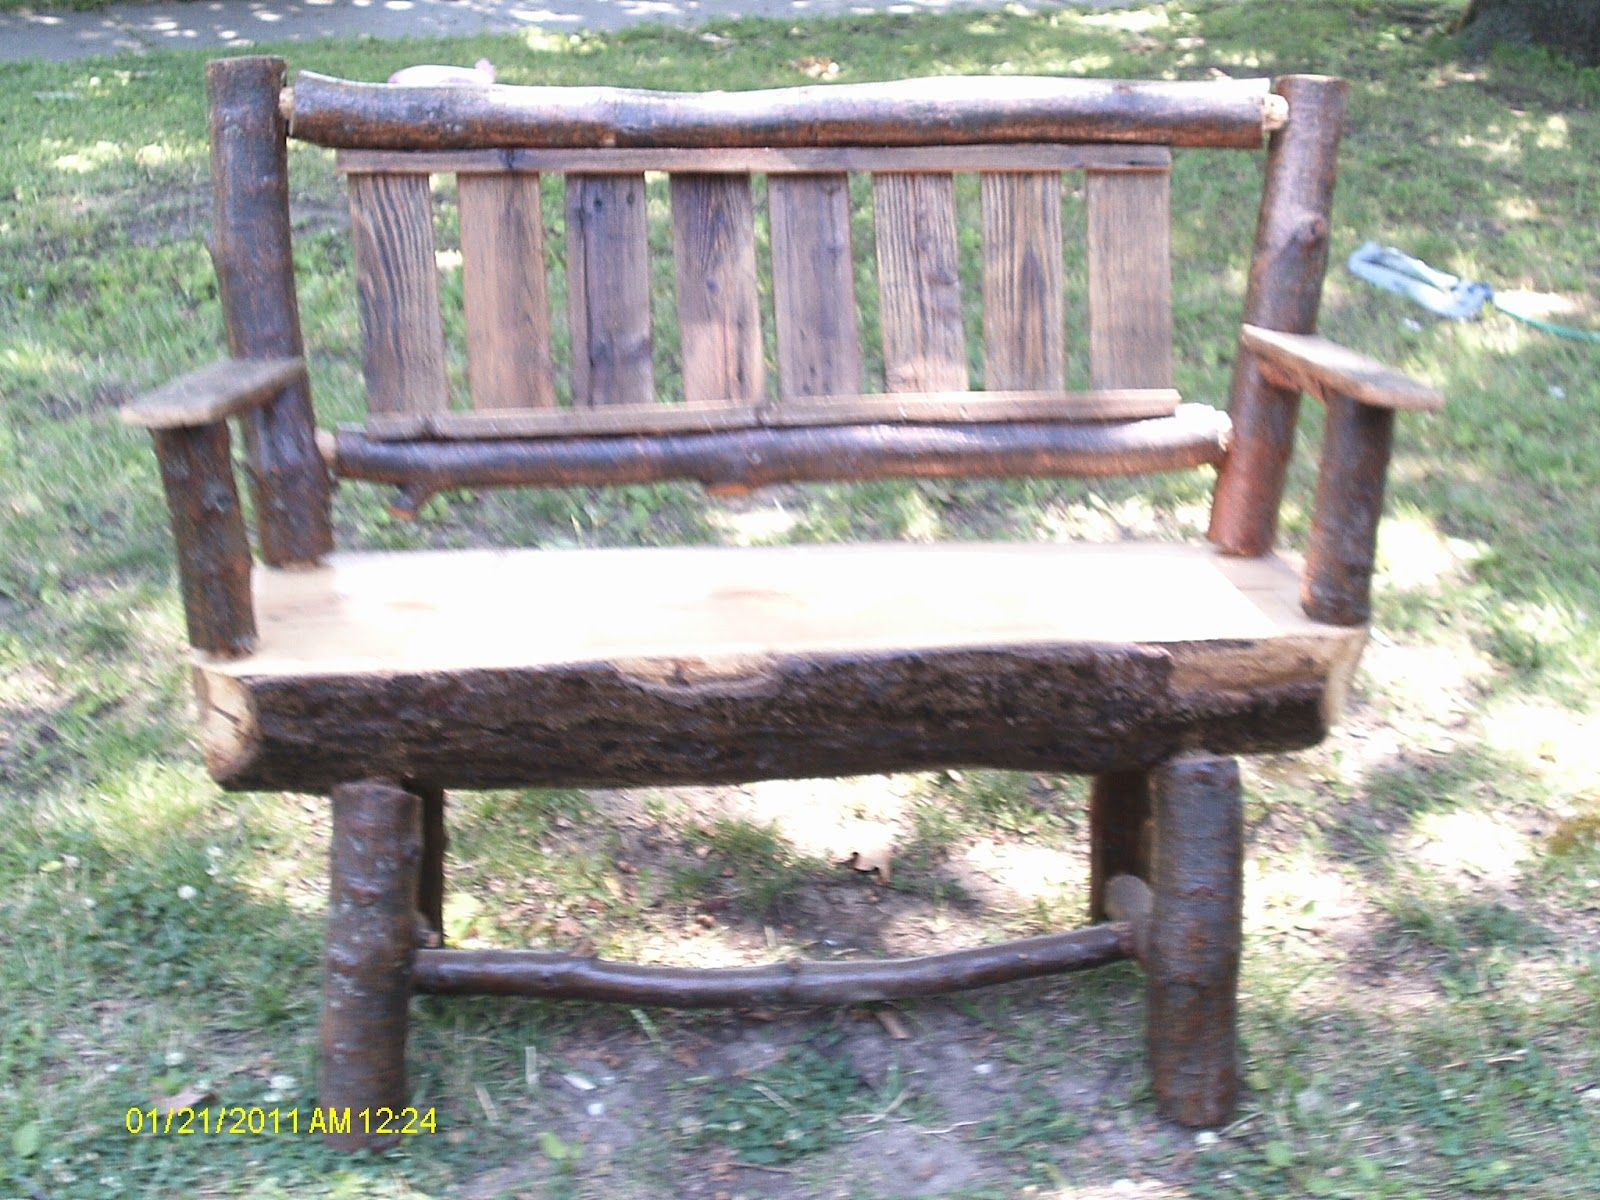 Handmade Rustic Log Furniture Oak Log Bench And Coffee Table Diy Patio Furniture Rustic Log Furniture Log Furniture